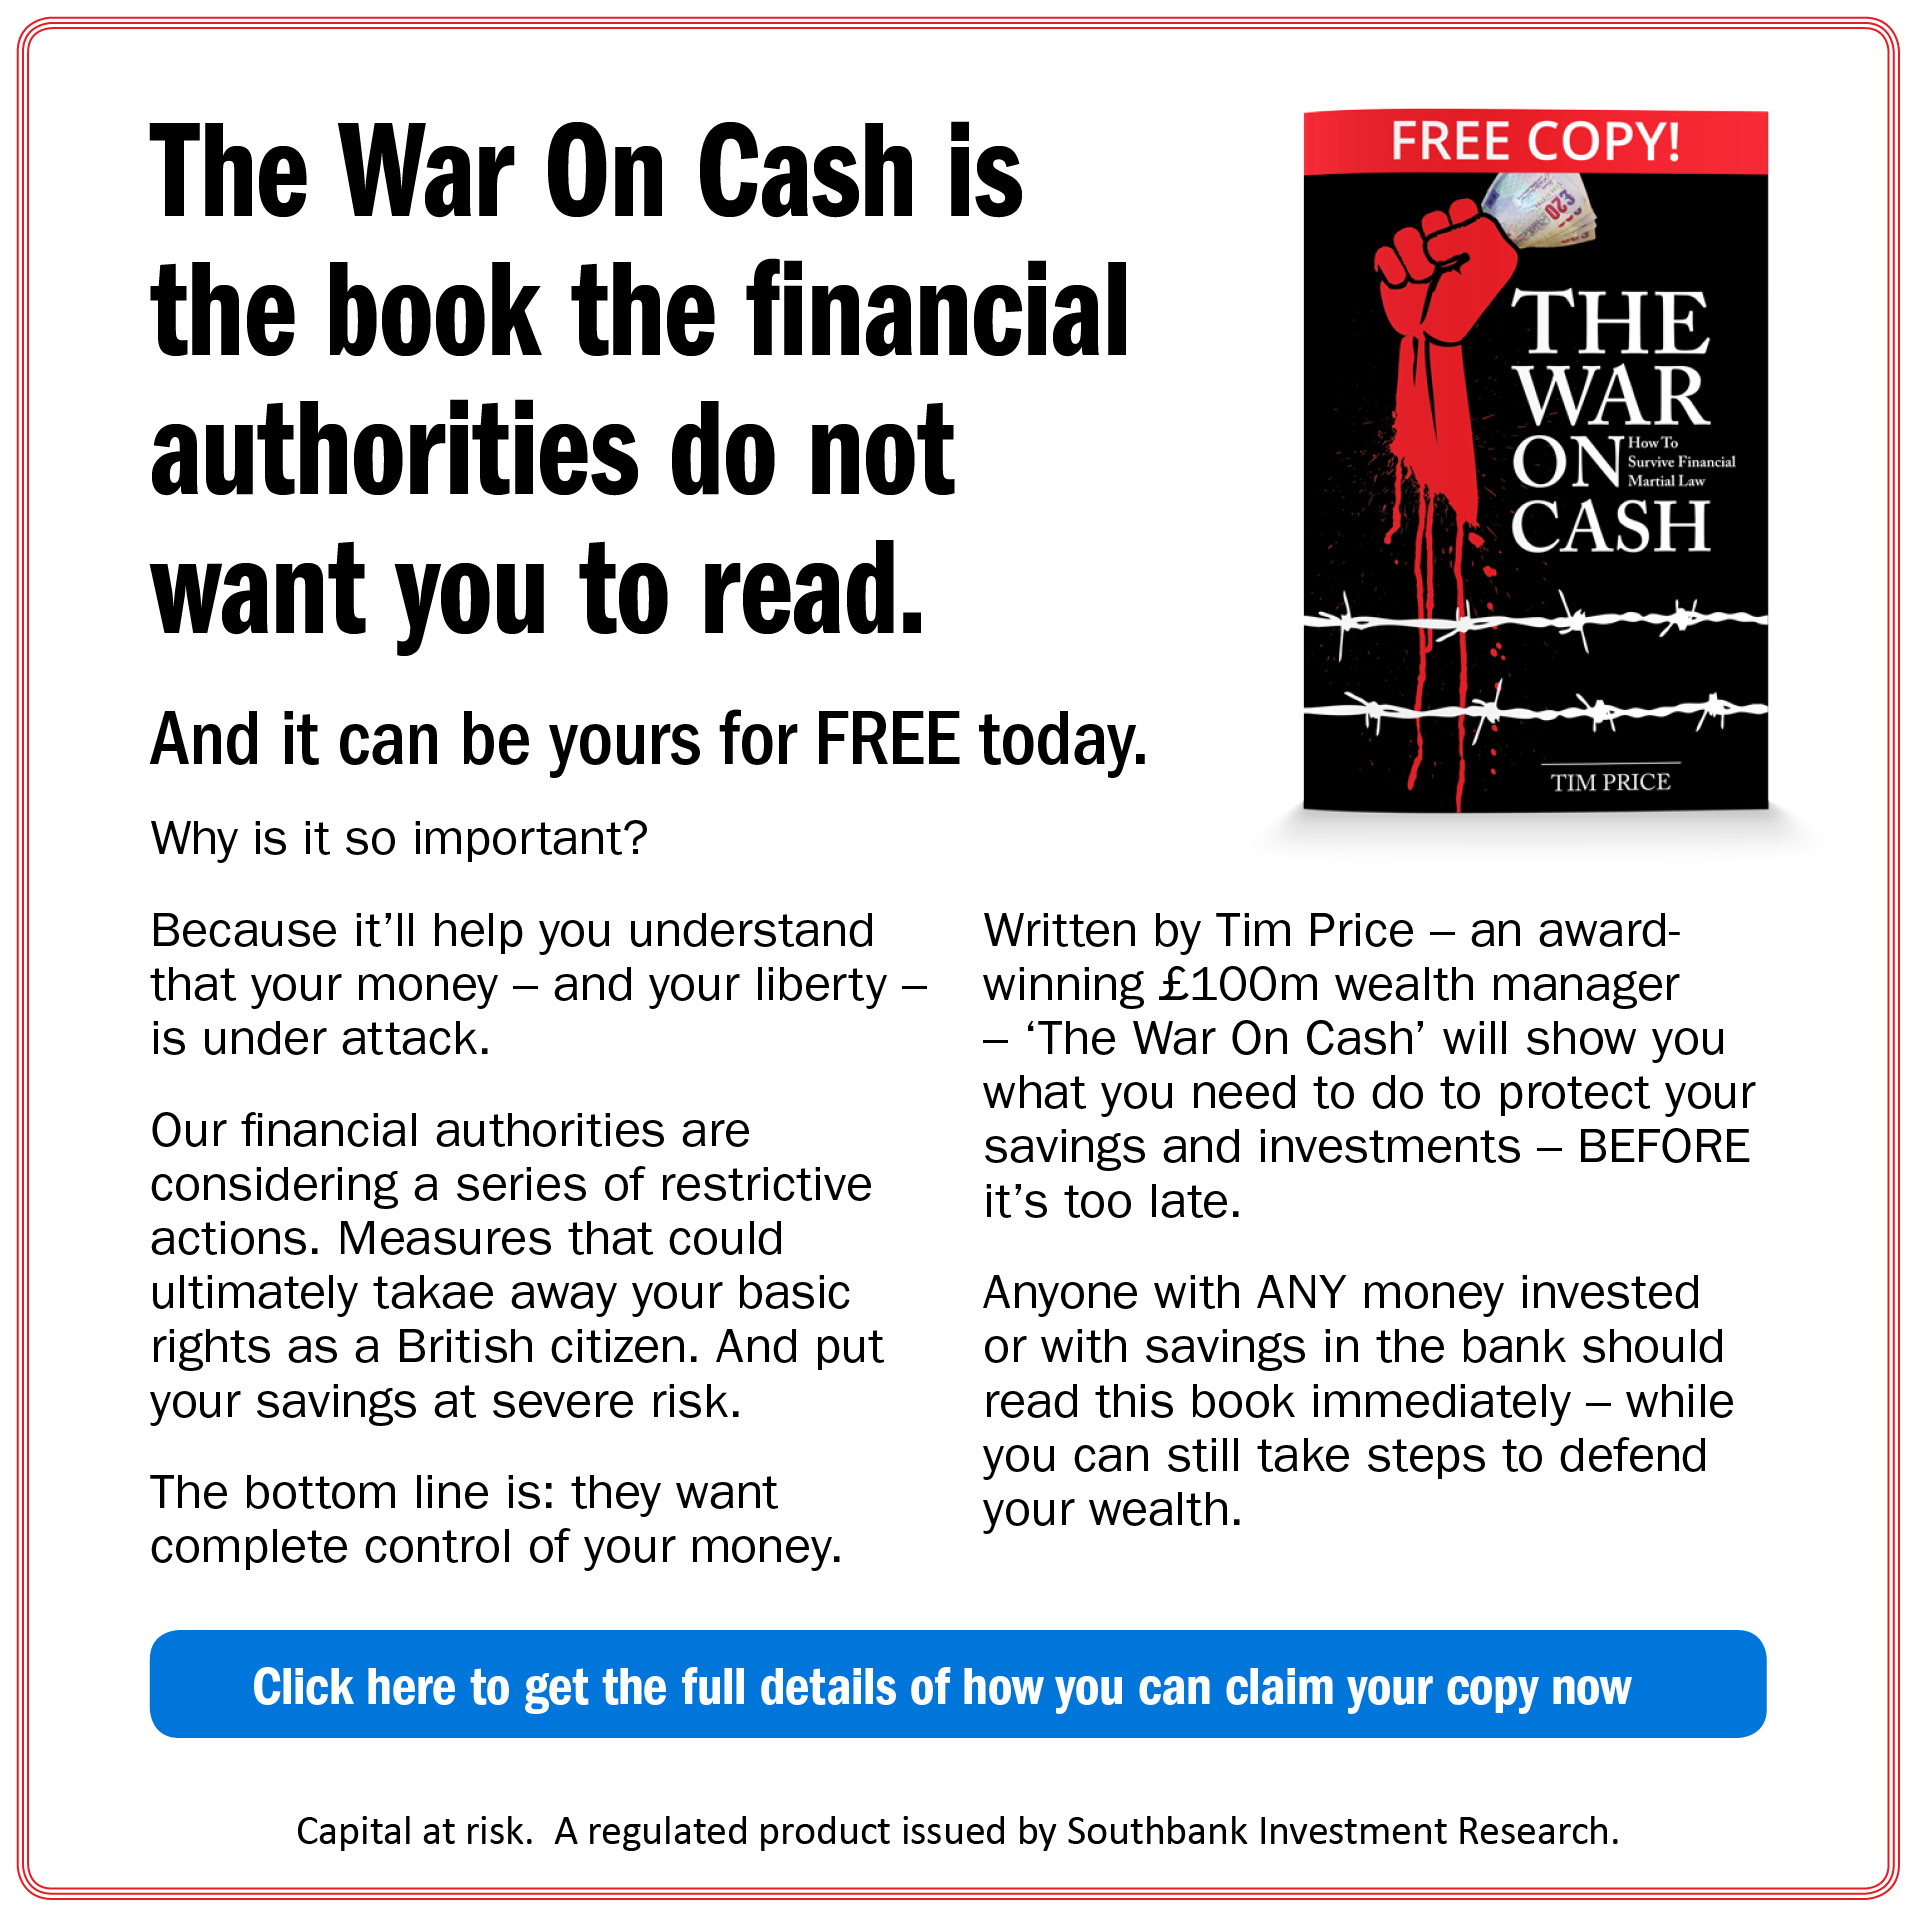 The War on Cash is the book the financial authprities do not want you to read